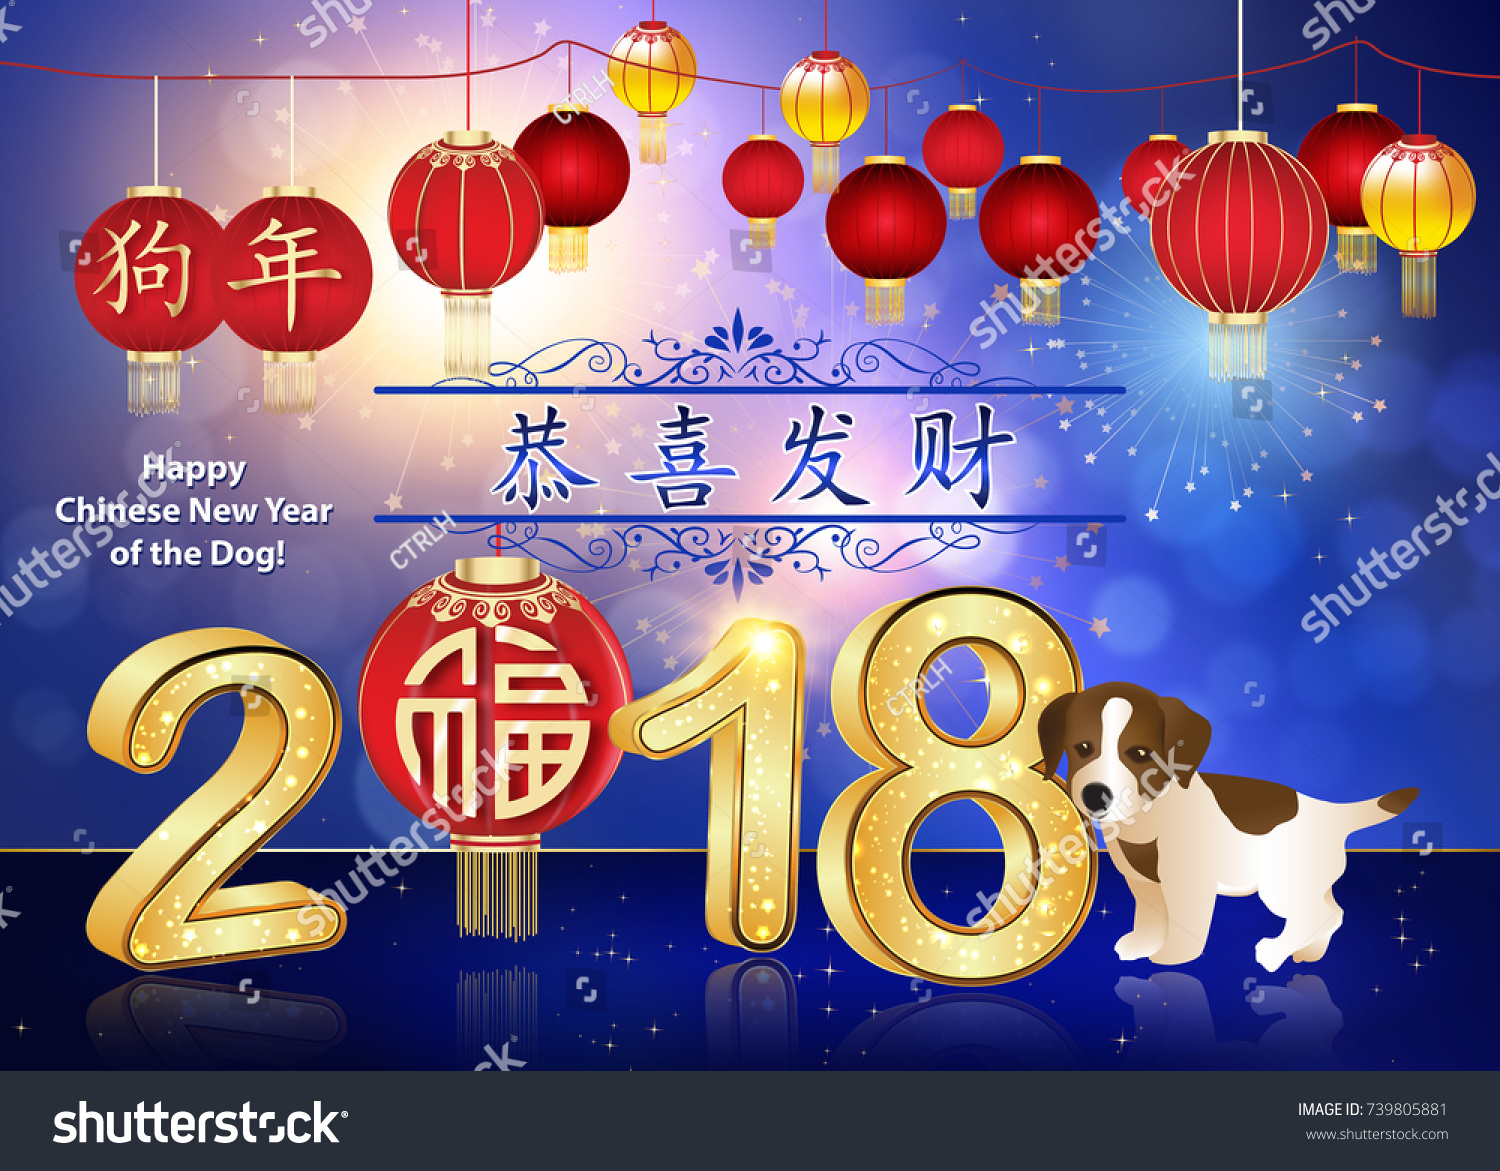 Greeting card fir chinese new year stock illustration 739805881 greeting card fir the chinese new year of the dog 2018 text translation congratulations m4hsunfo